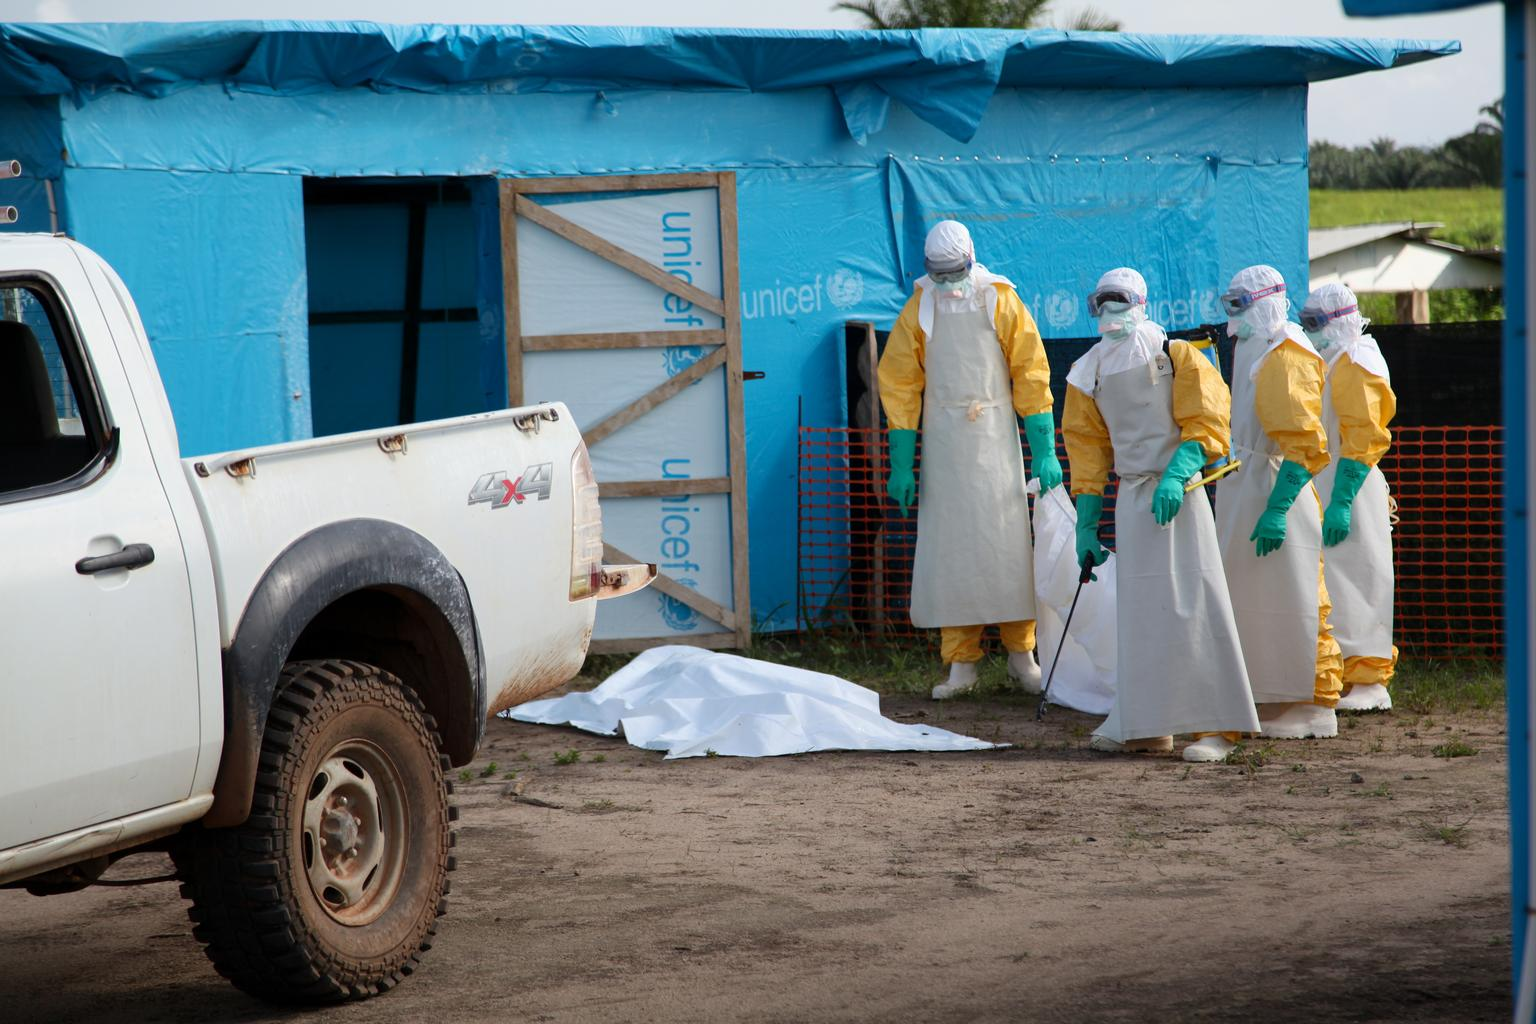 Health workers, wearing head-to-toe protective gear, prepare for work outside an isolation unit in Foya District, Lofa County. © UNICEF/2014/Liberia/Jallanzo